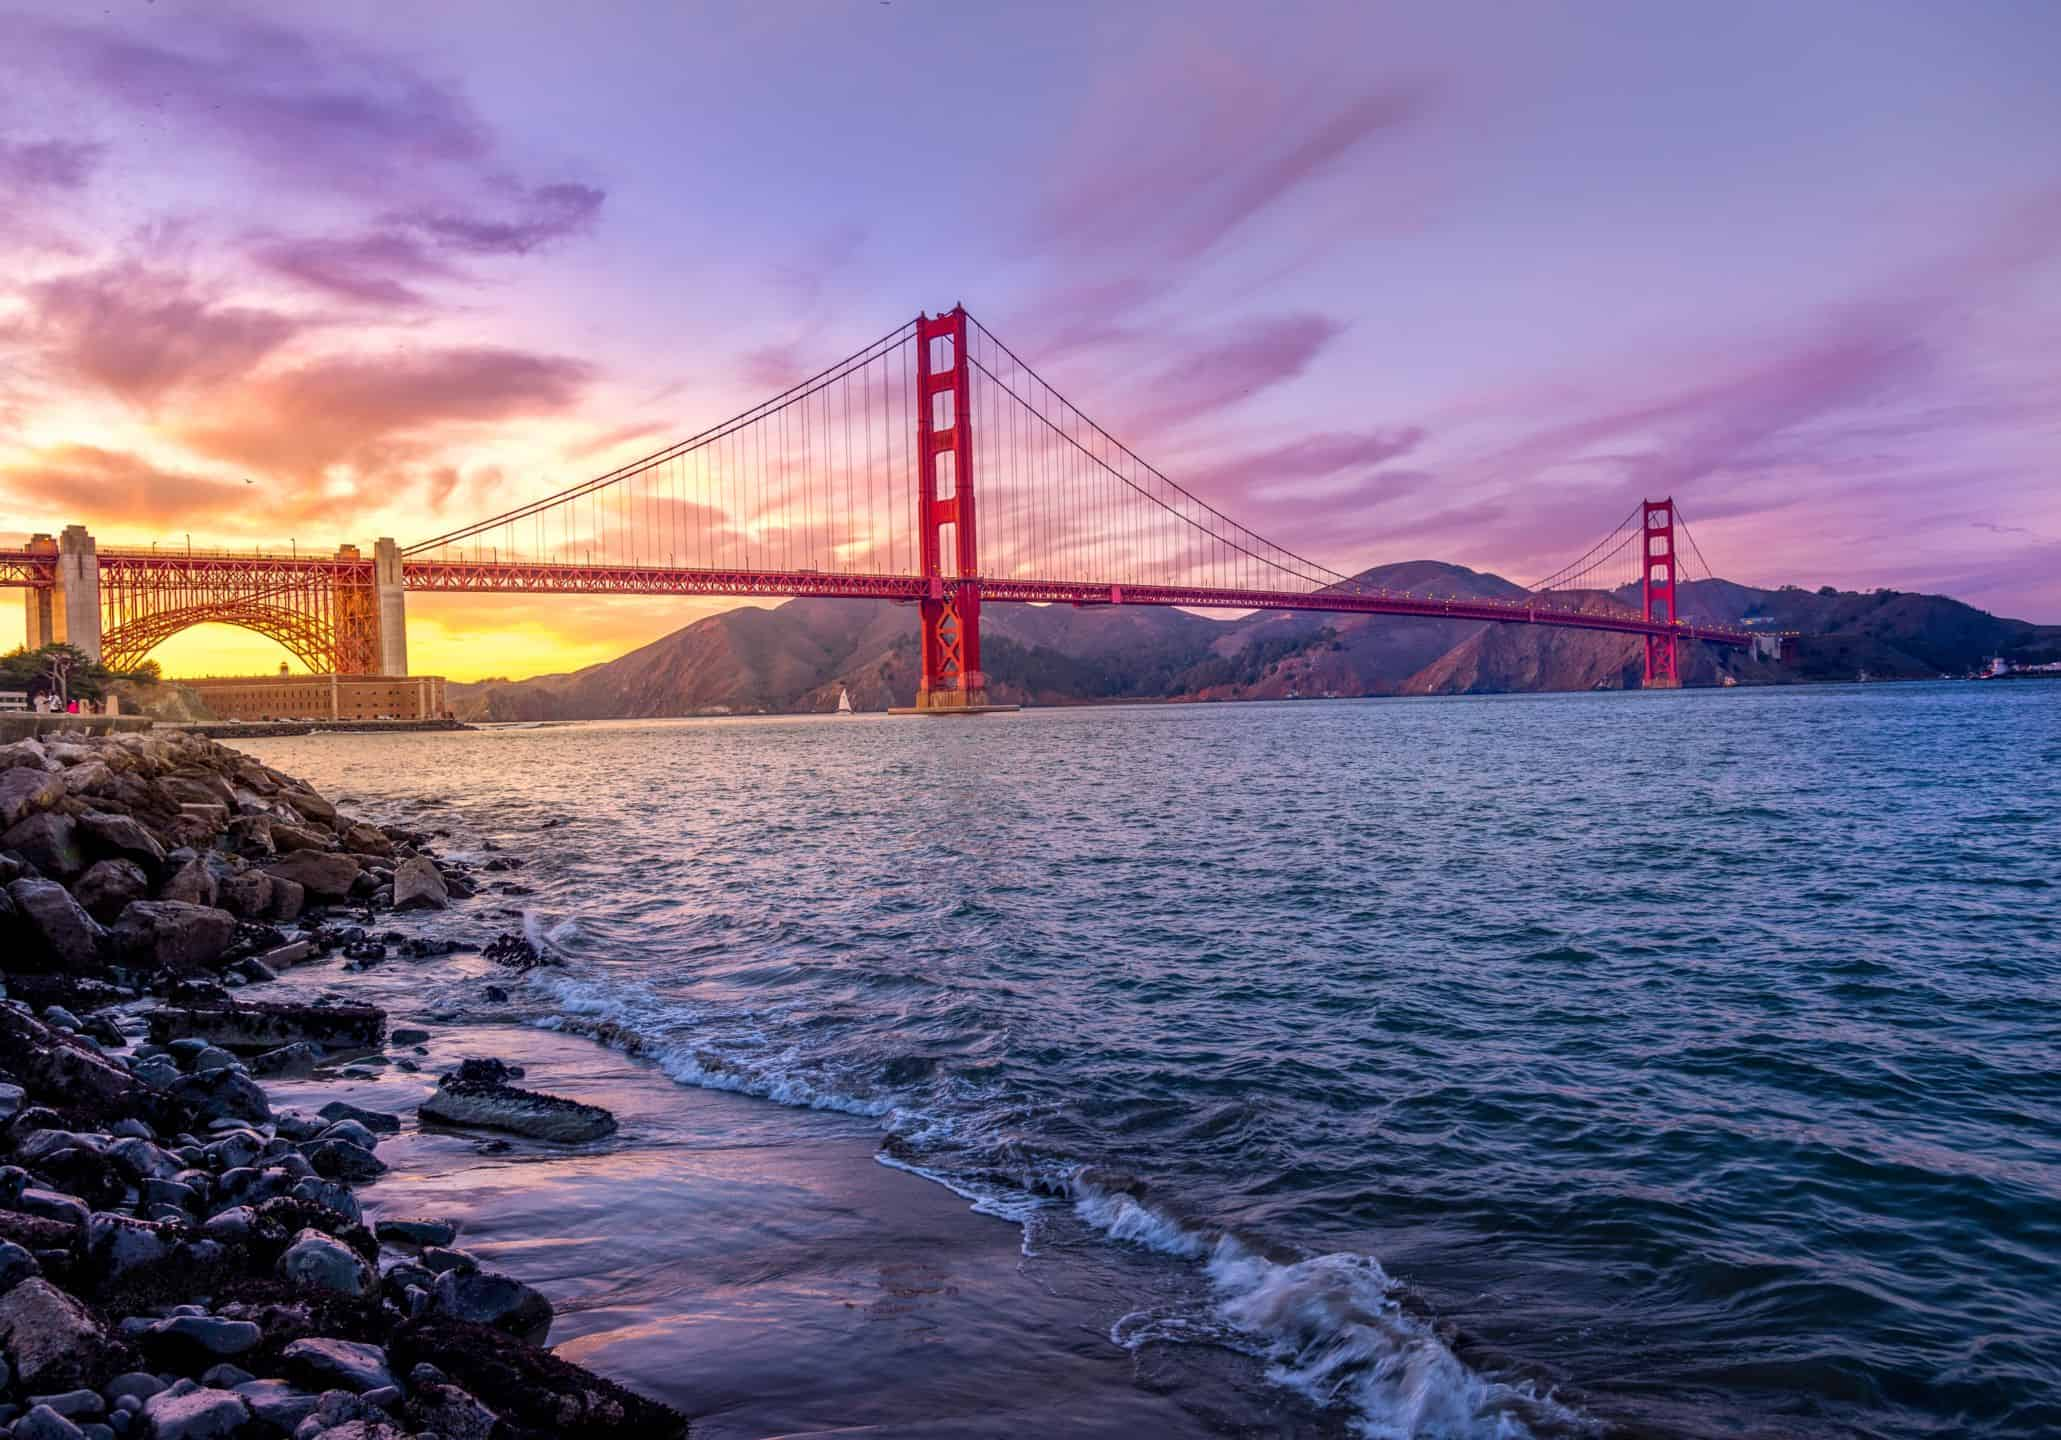 7 Reasons Software Testing Professionals Should Avoid Accelerate San Francisco Like the Plague